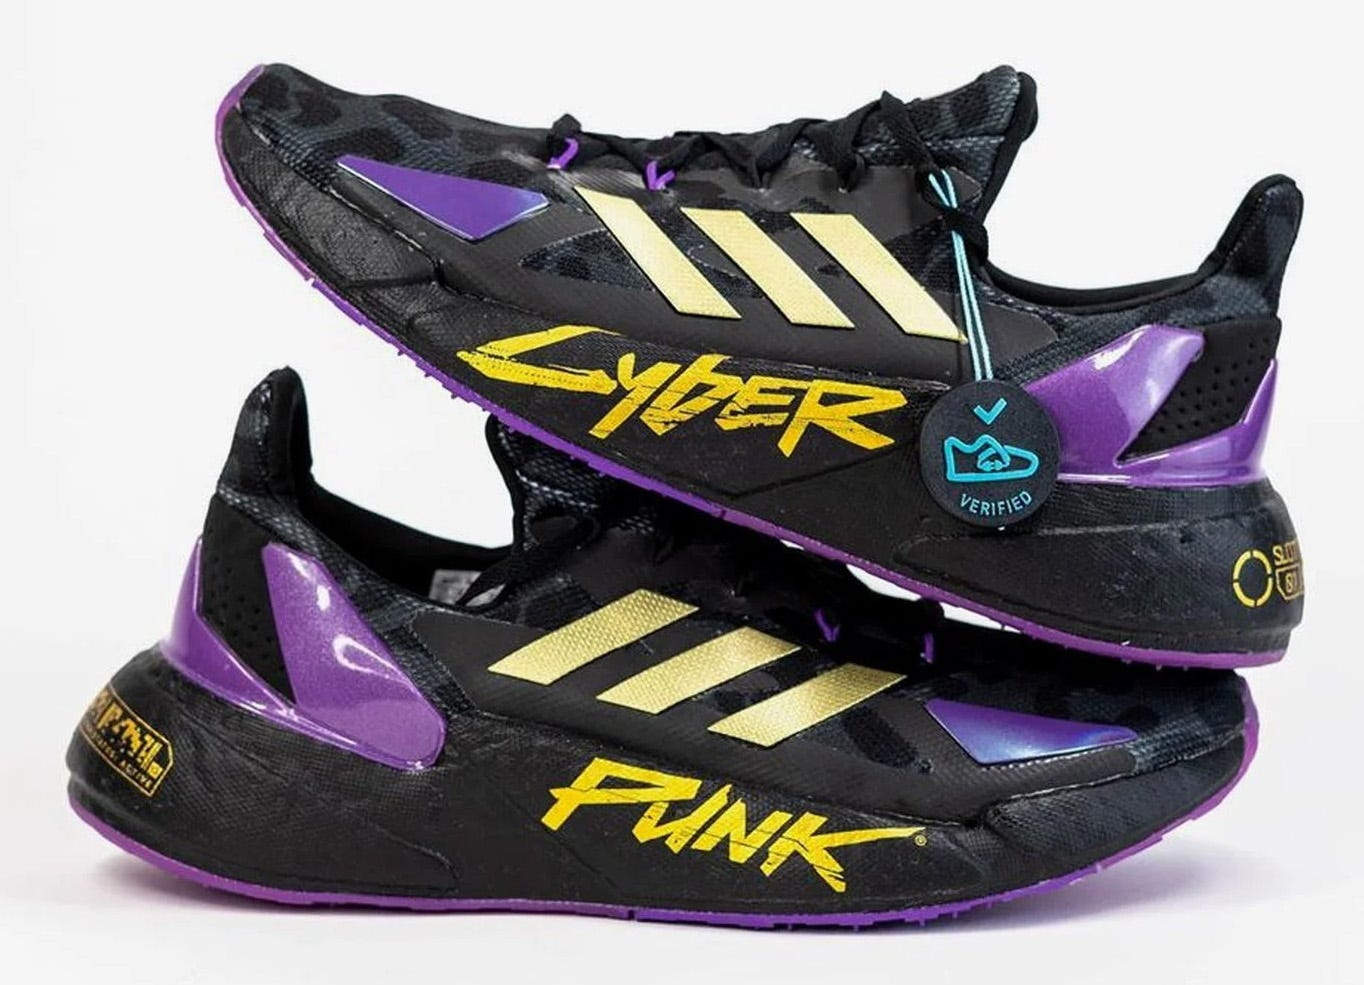 Cyberpunk sneakers from Adidas